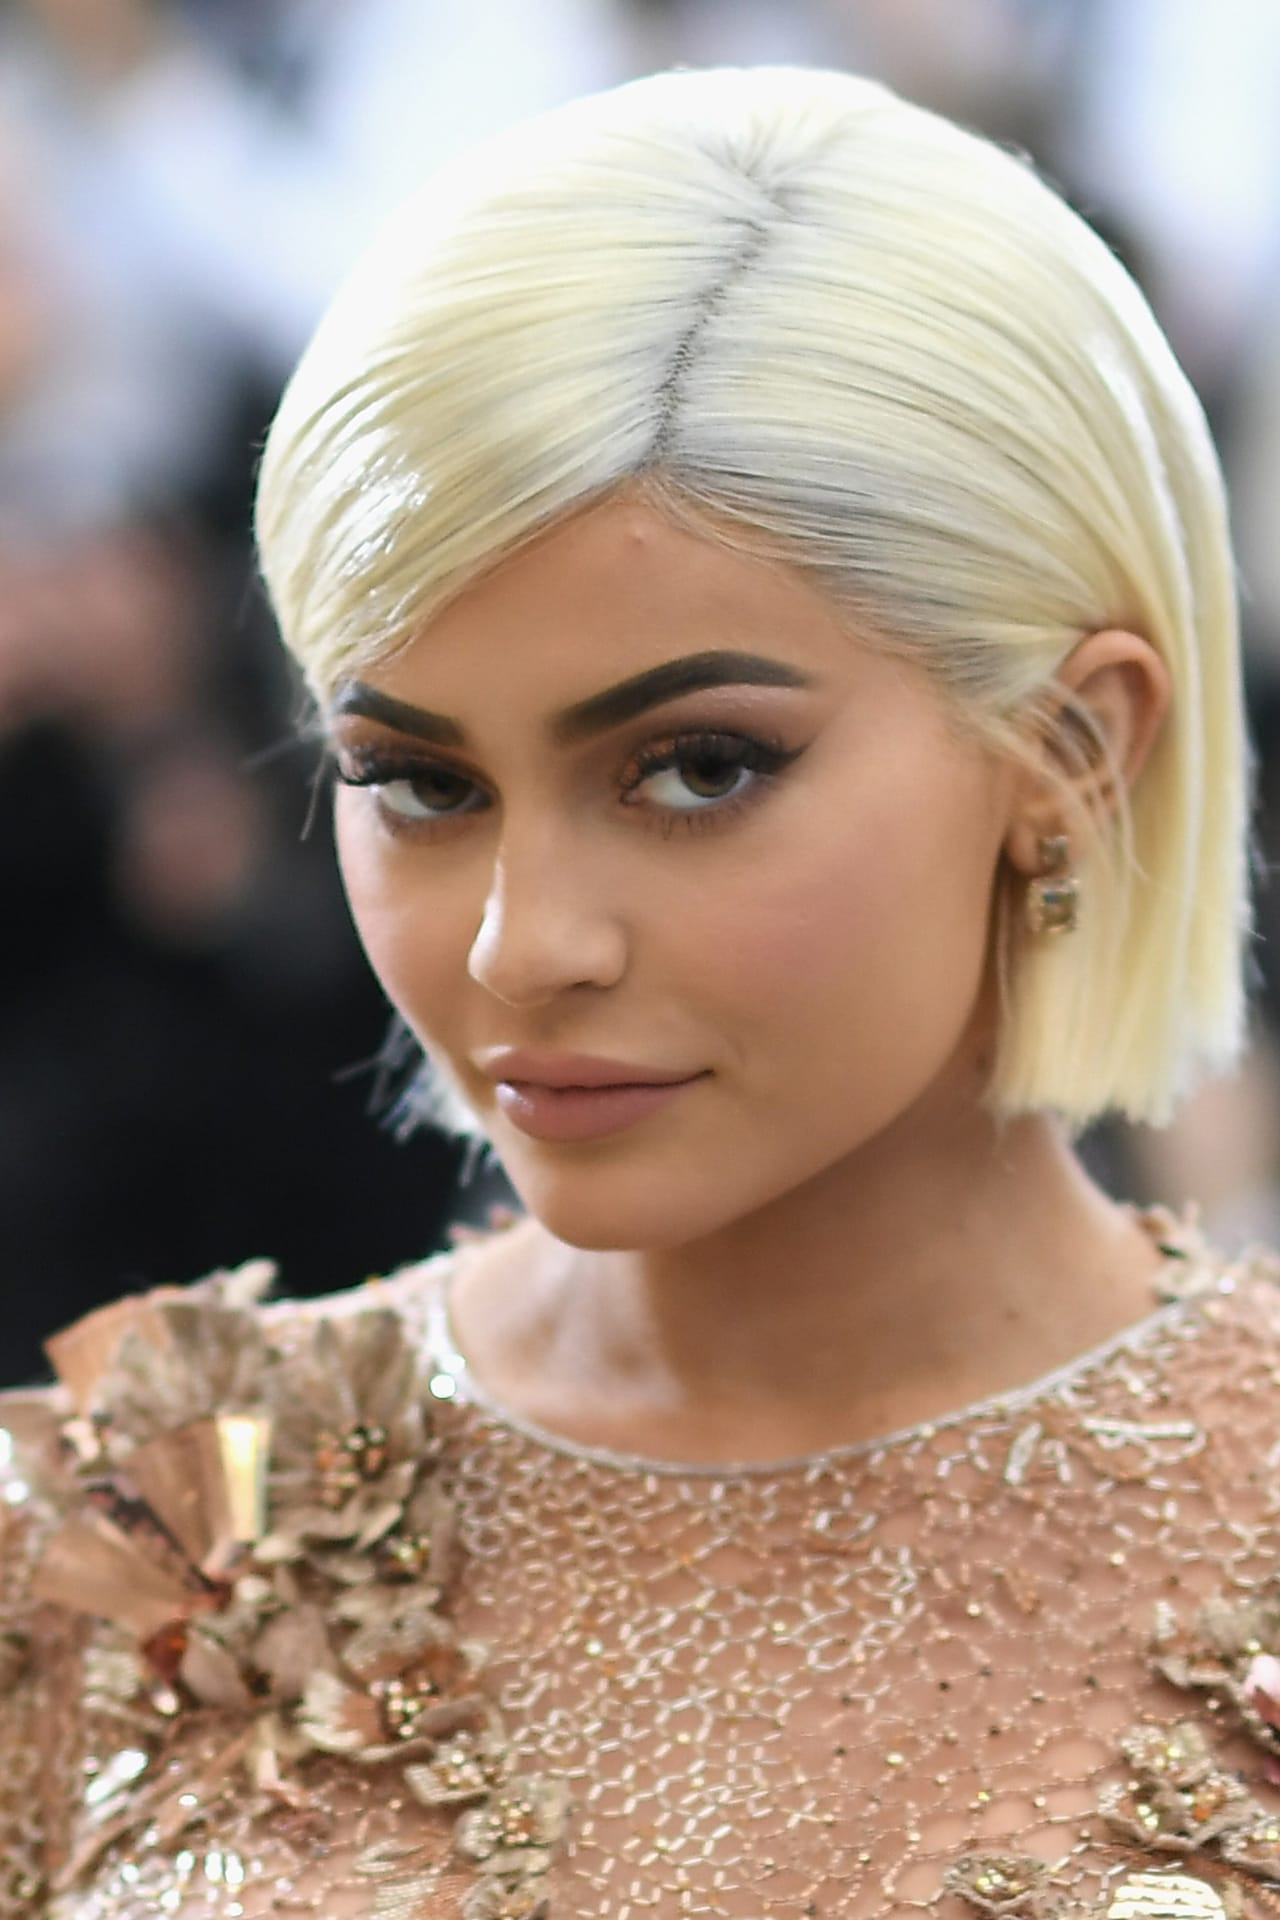 Kylie Jenner is officially back to being Kylie Jenner